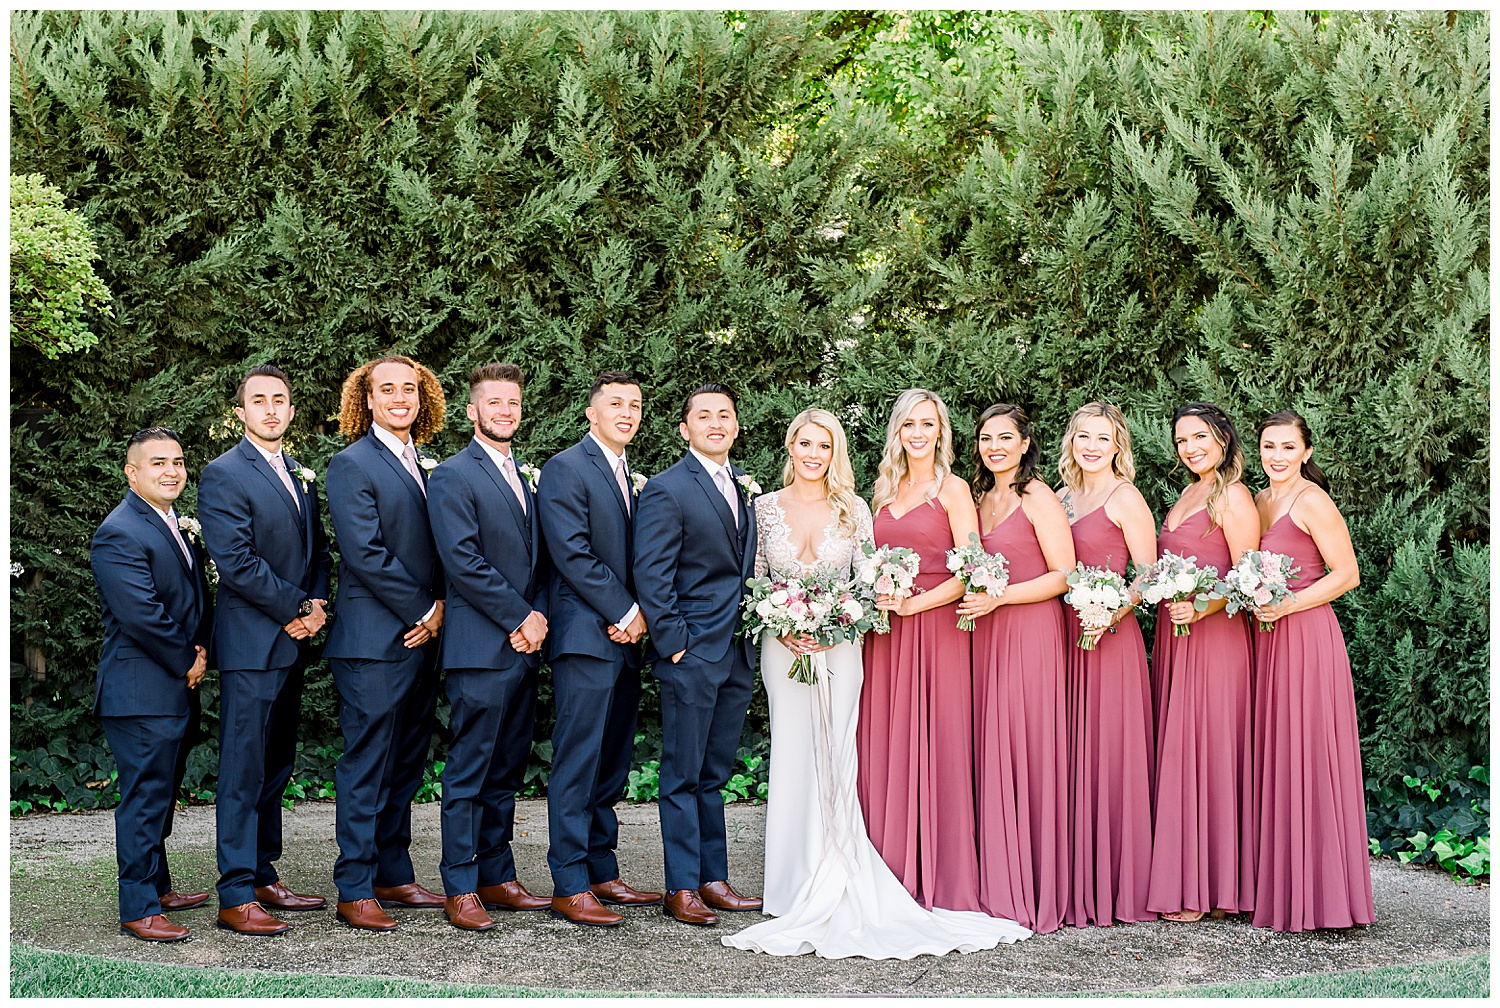 Janine_Licare_Photography_San_Francisco_Wedding_Photographer_Carneros_Tyge_Williams_Sonoma_Napa_0226.jpg